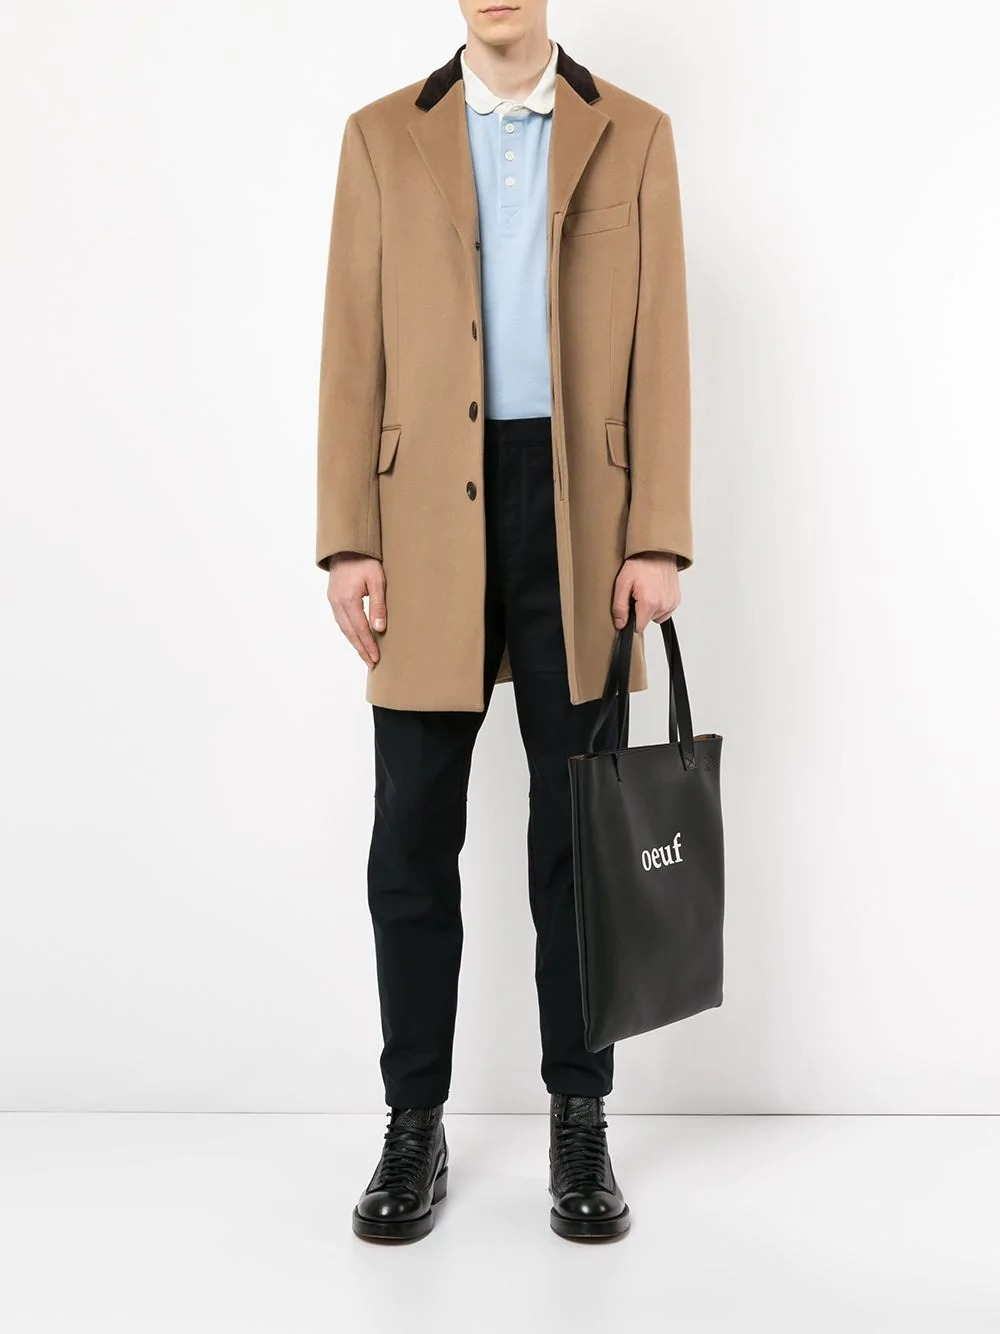 camel coat with black collar